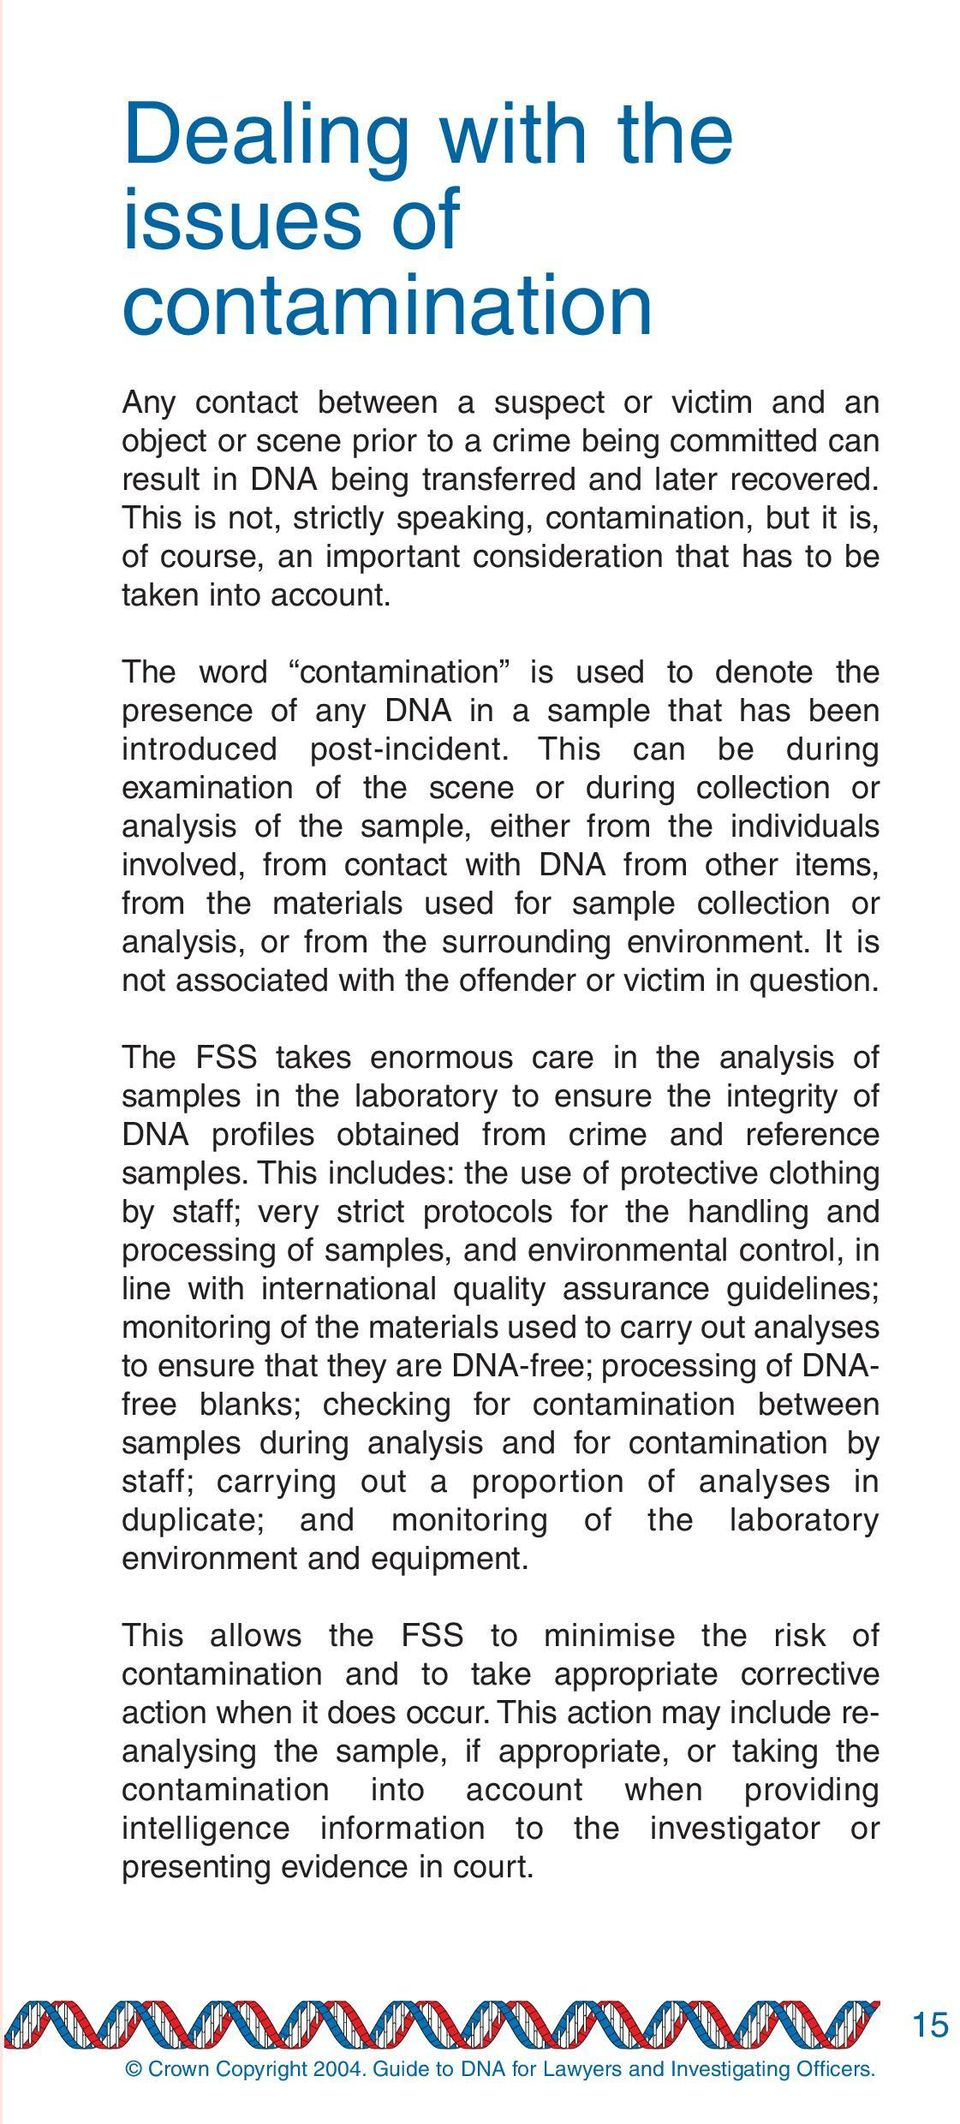 The word contamination is used to denote the presence of any DNA in a sample that has been introduced post-incident.